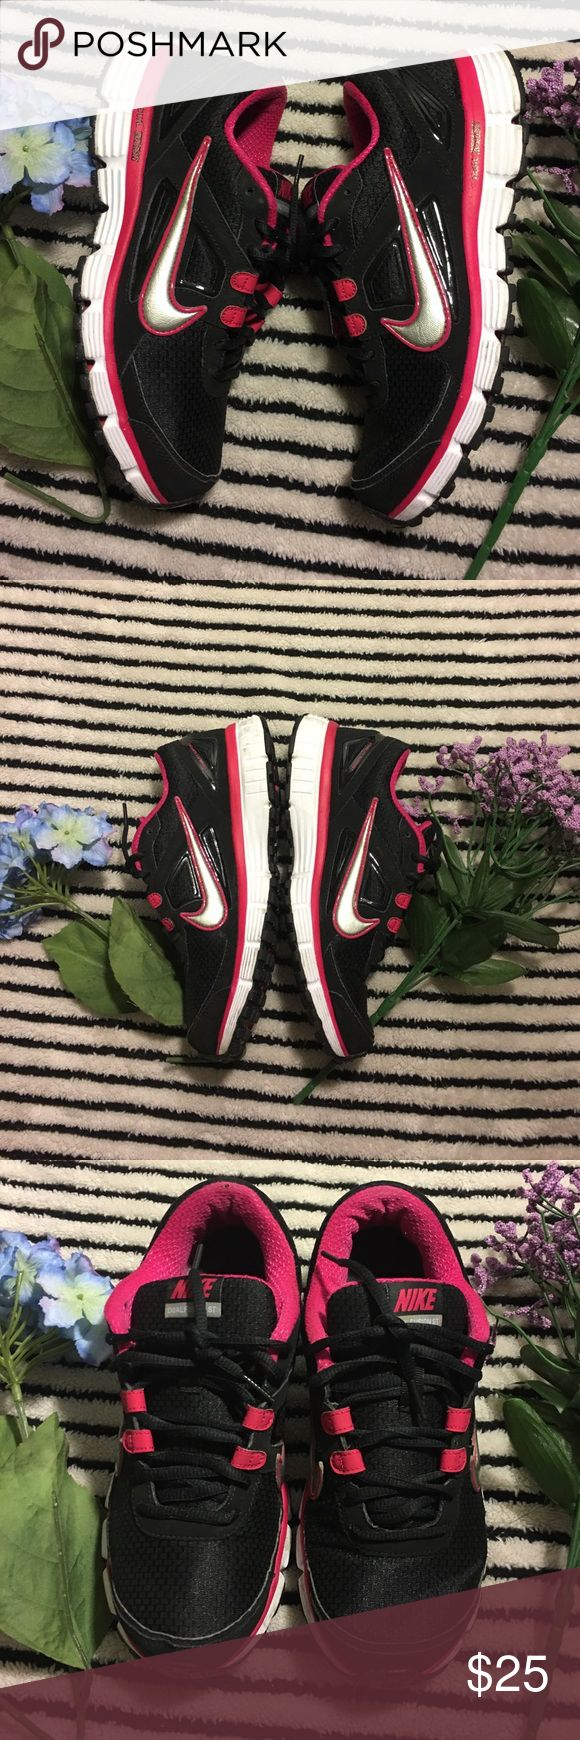 Nike dual fusion sneakers Nike dual fusion tennis shoes fuchsia and black color •.normal wear •  size 8 1/2 • Nike Shoes Sneakers